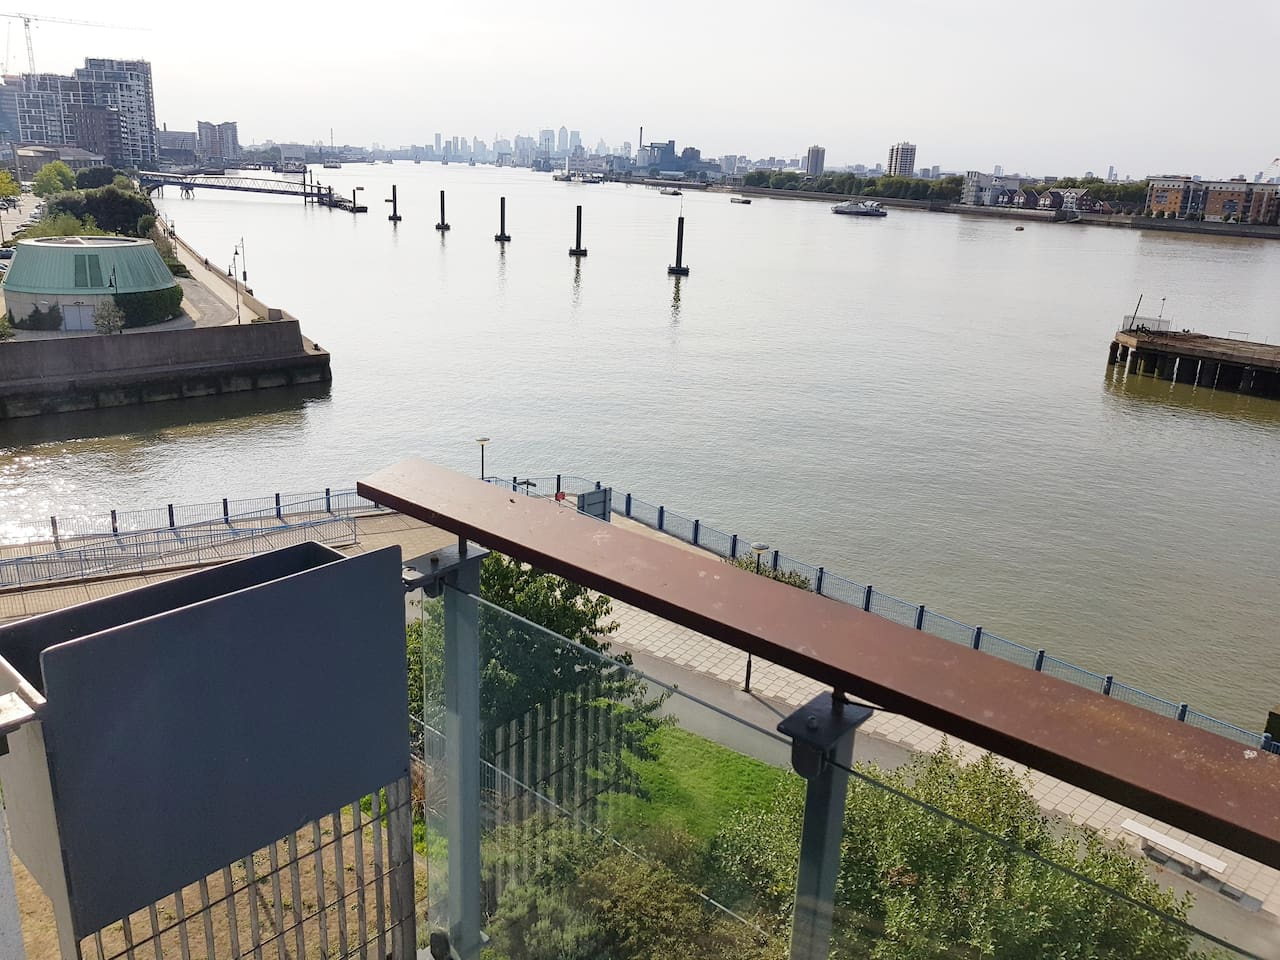 Balcony view of Thames and surrounding area